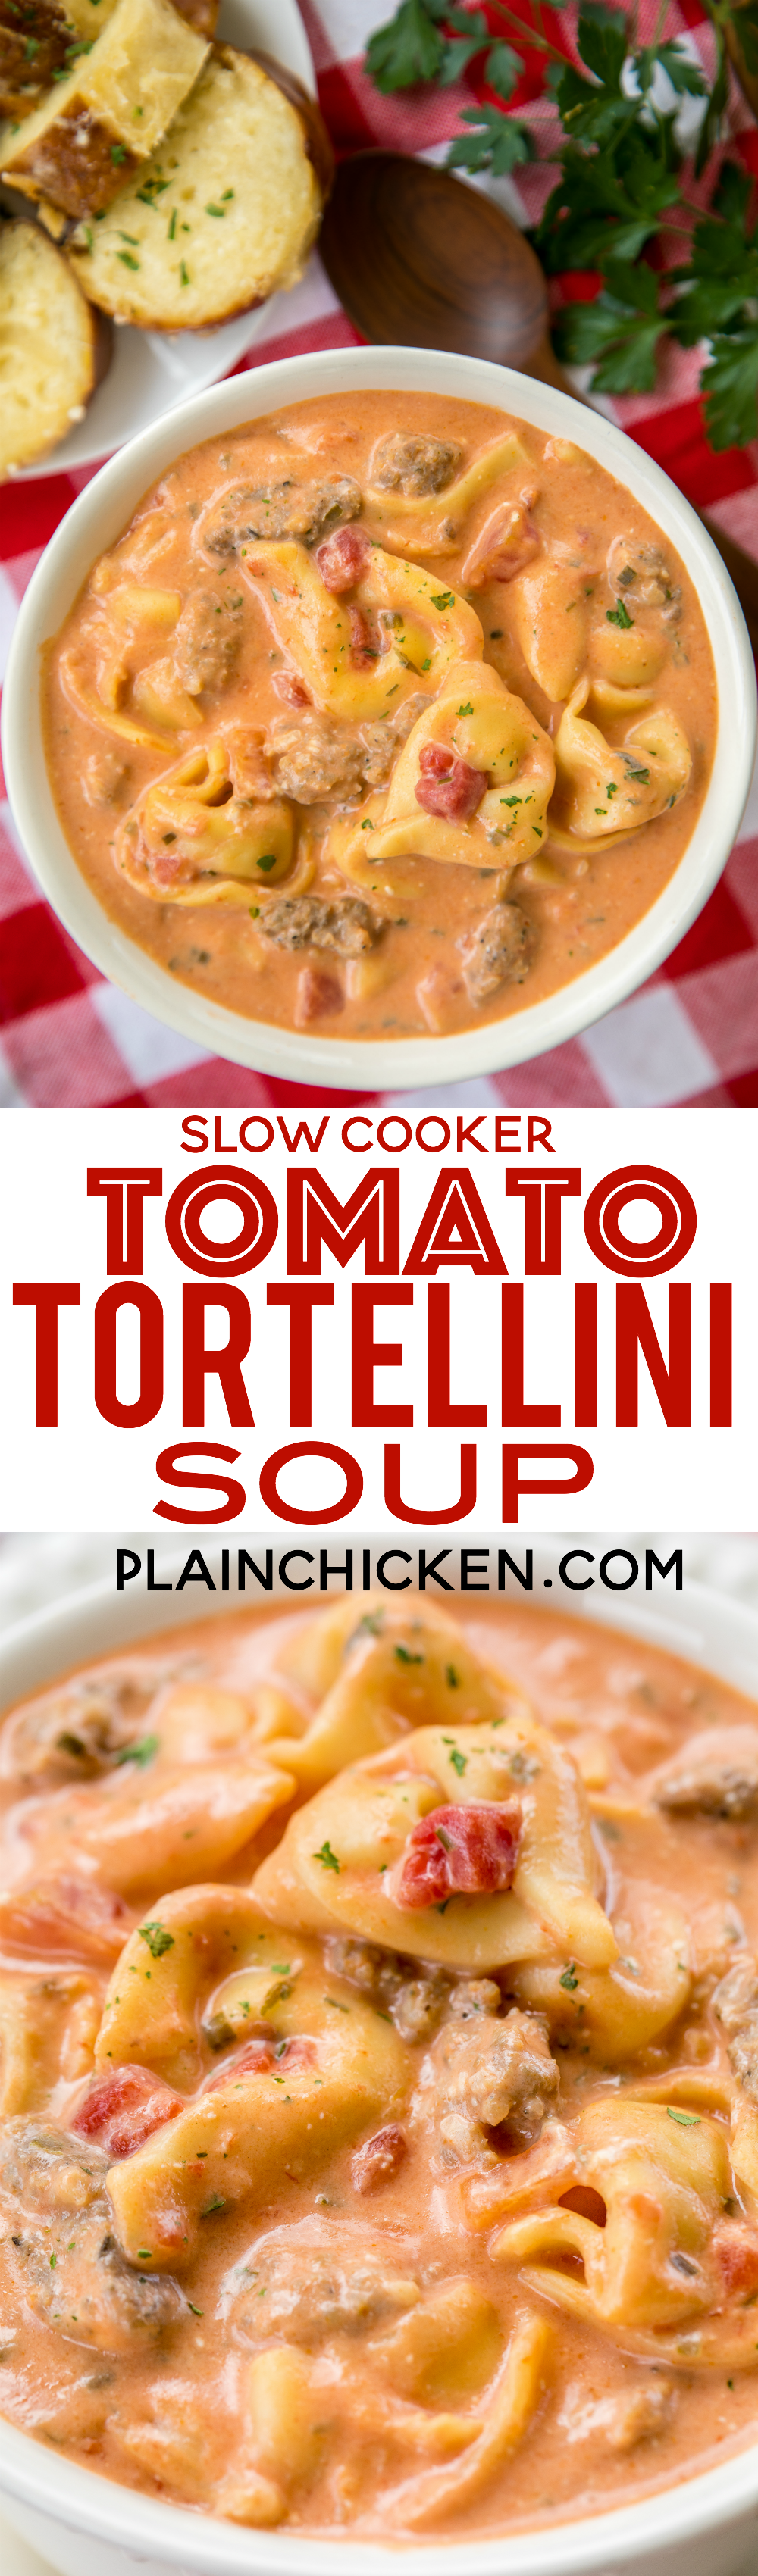 Slow cooker tomato tortellini soup seriously delicious for Delicious slow cooker soup recipes